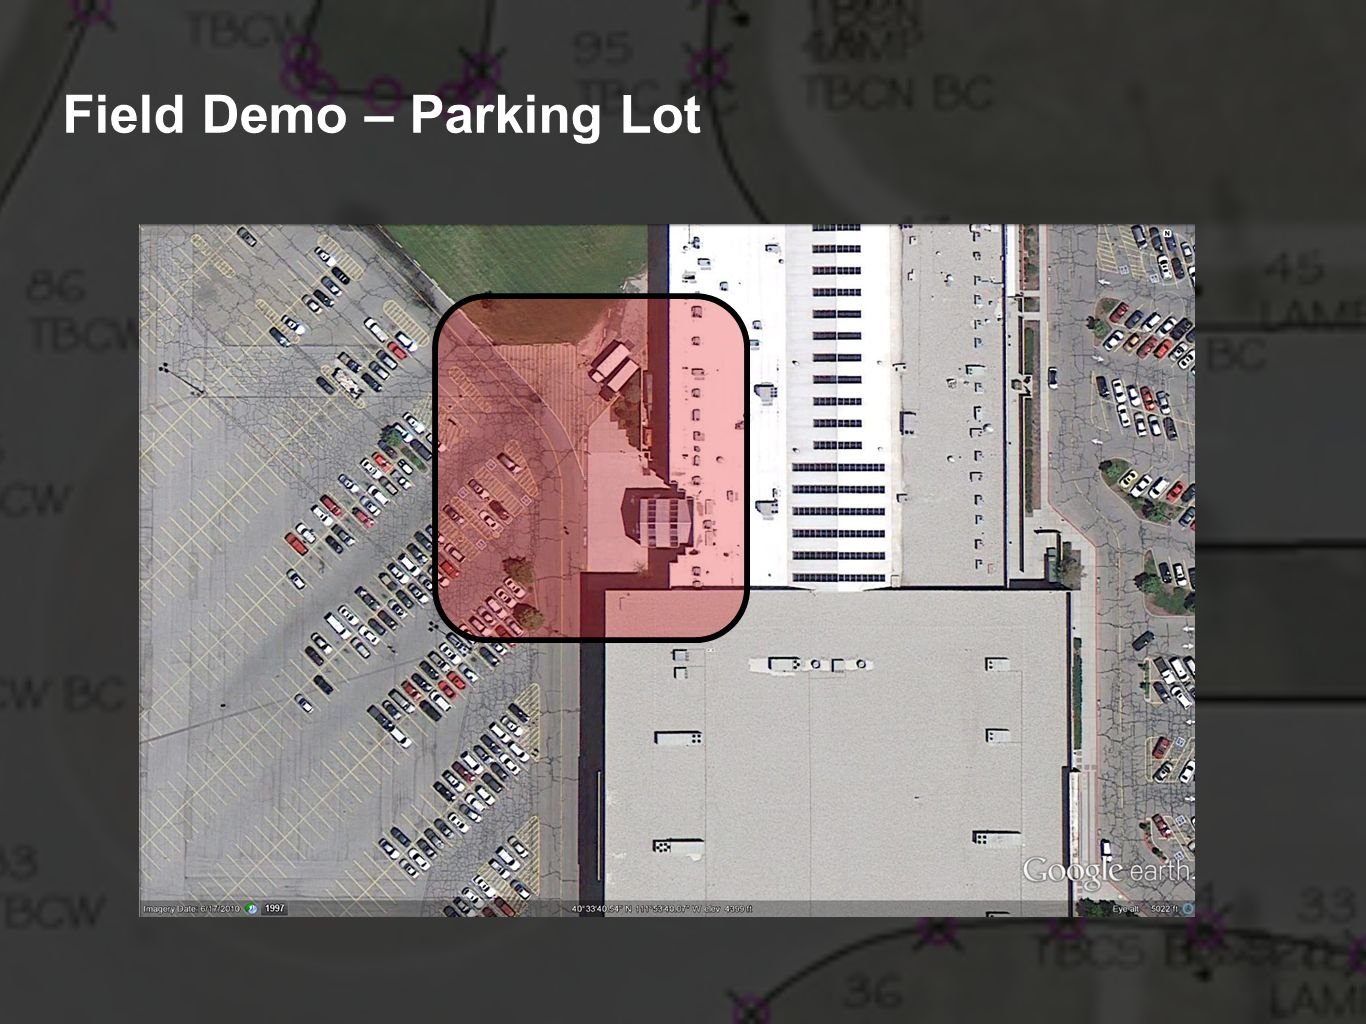 Field Demo – Parking Lot